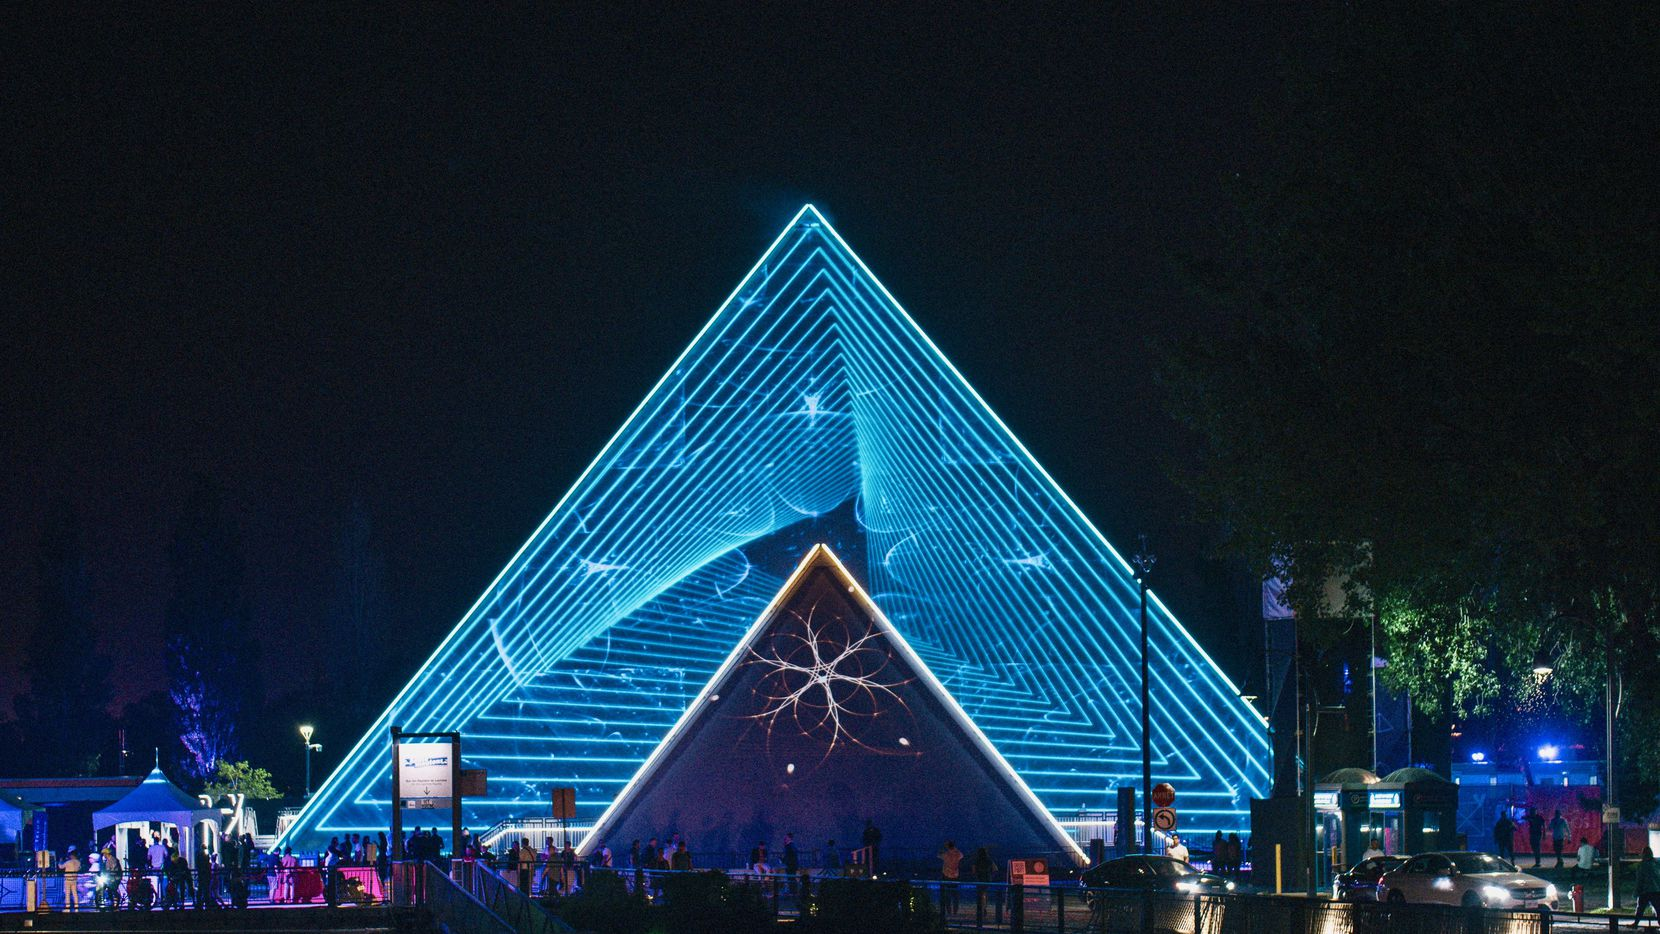 PY1, a touring attraction featuring an 81-foot-tall pyramid-shaped entertainment venue that can hold up to 1,000 people, is coming to Arlington on Dec. 31. The venue is shown during a previous tour stop.